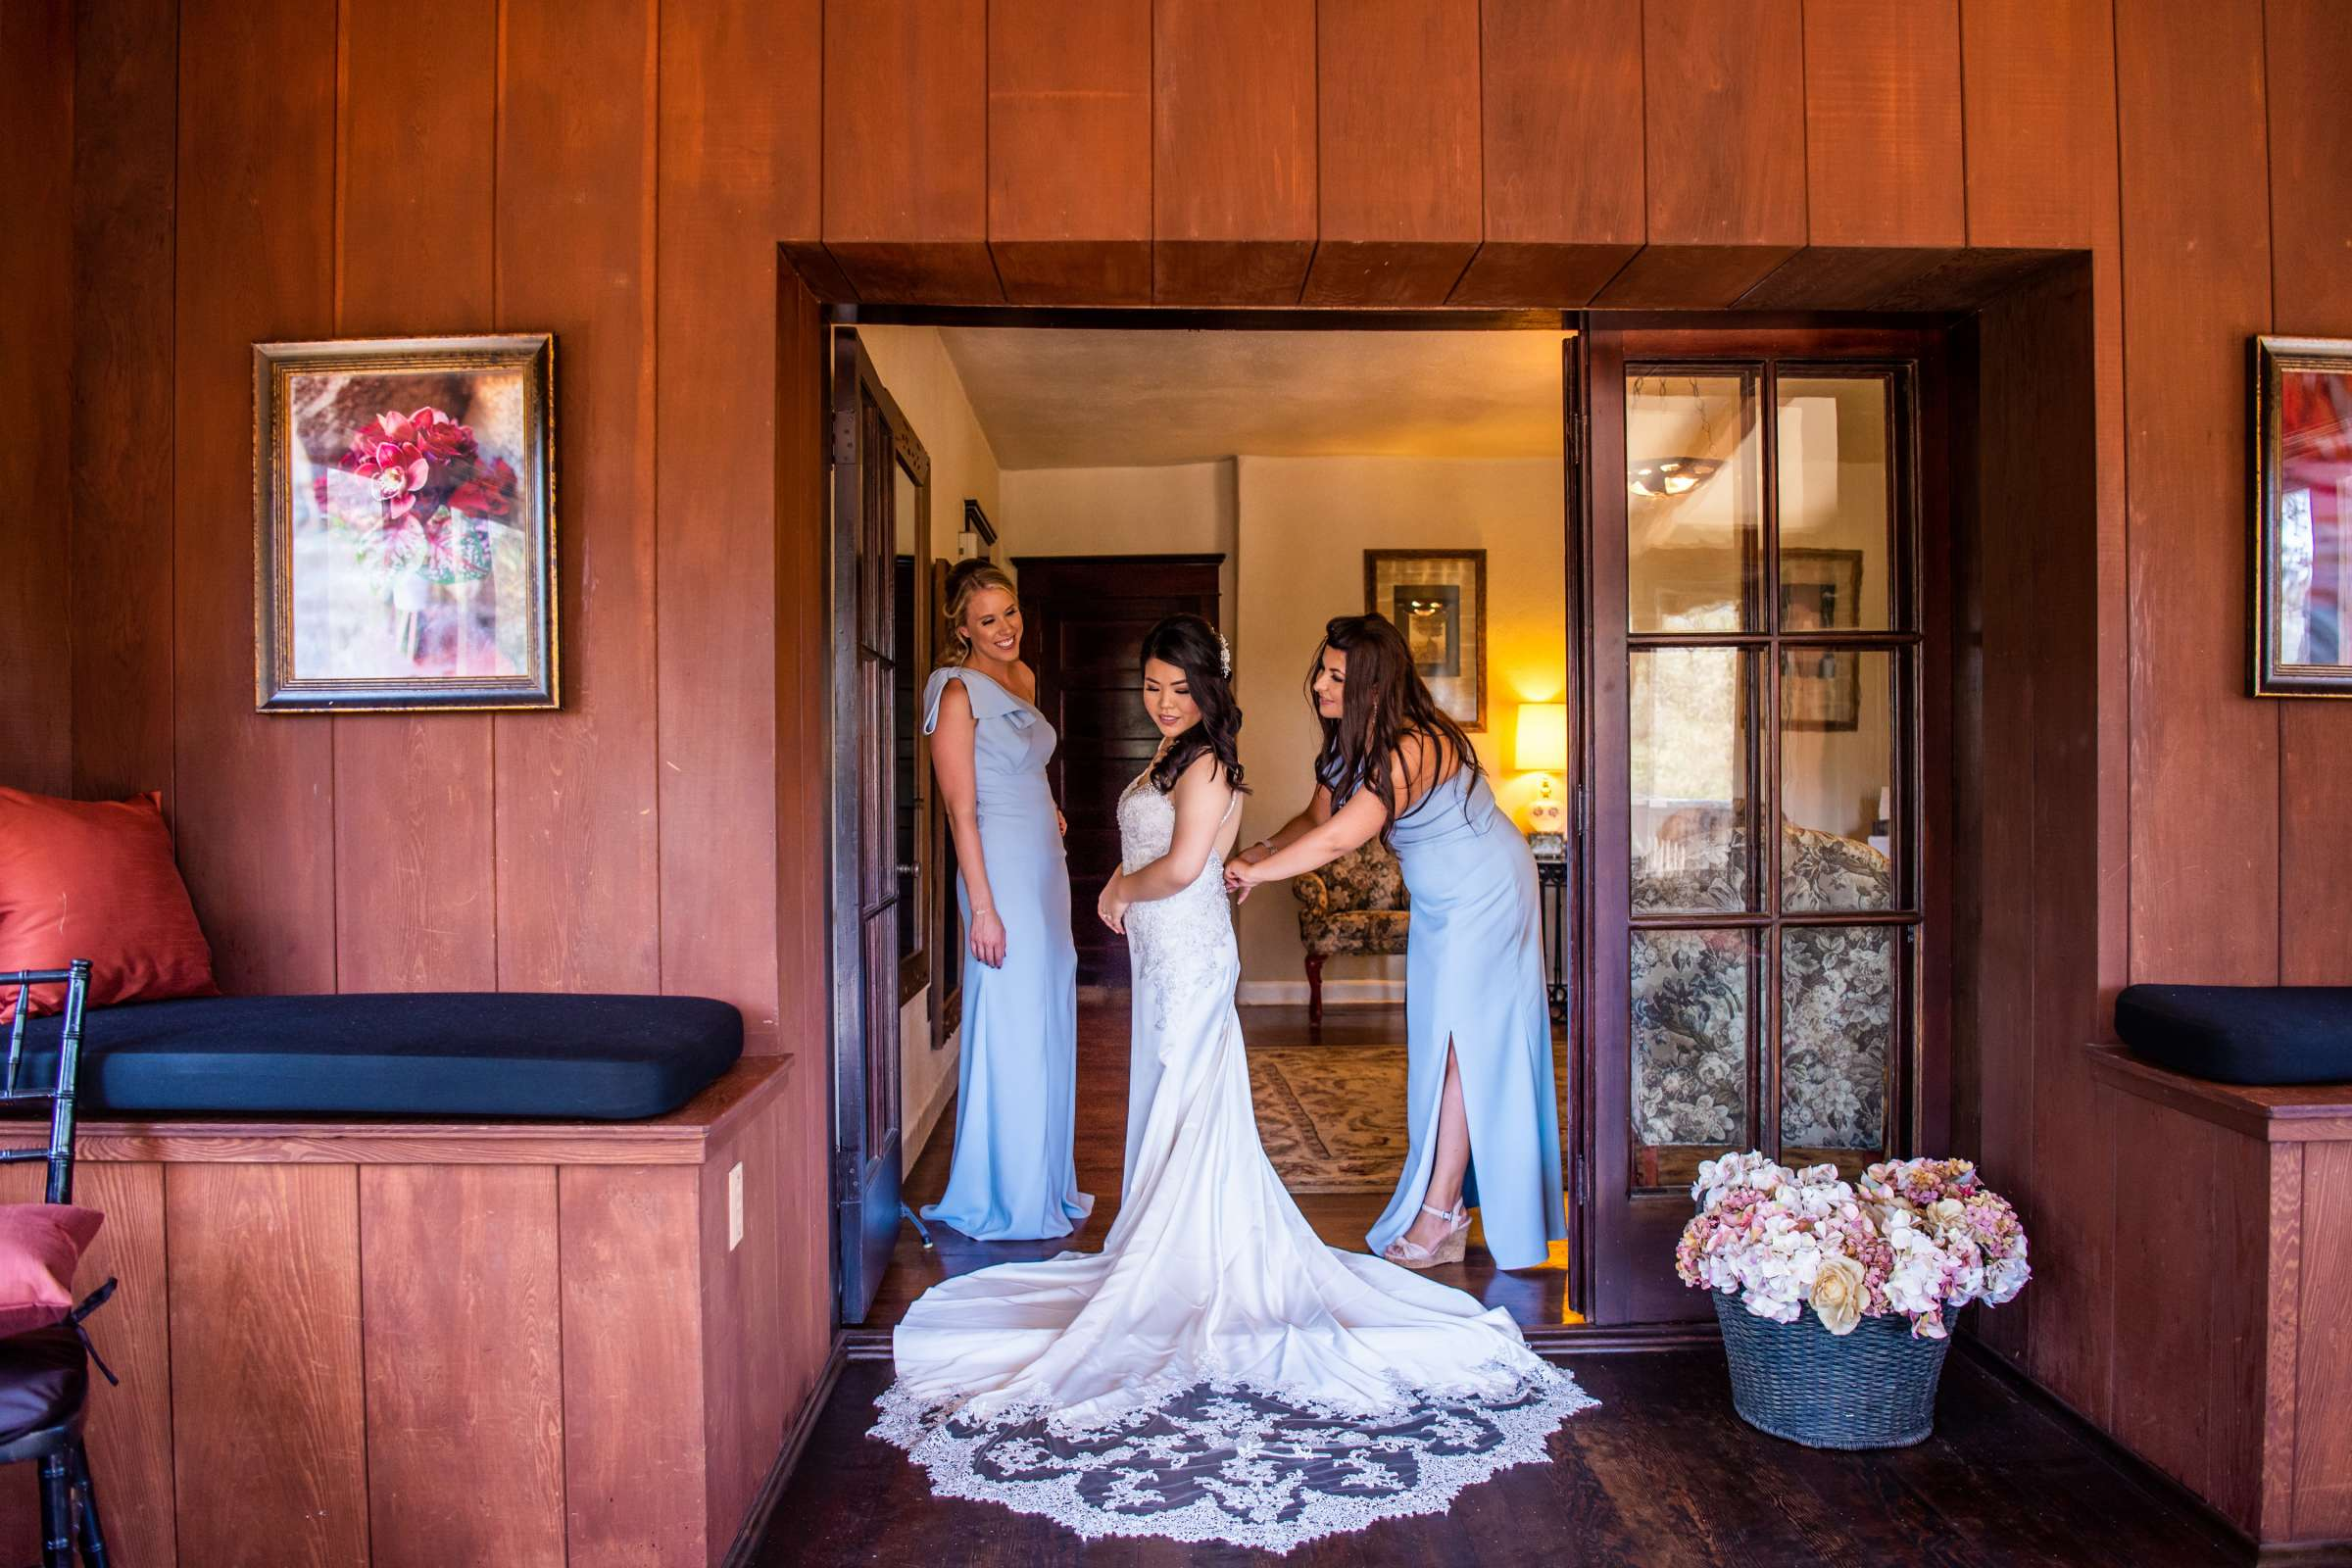 Mt Woodson Castle Wedding coordinated by I Do Weddings, Aya and Jared Wedding Photo #486873 by True Photography